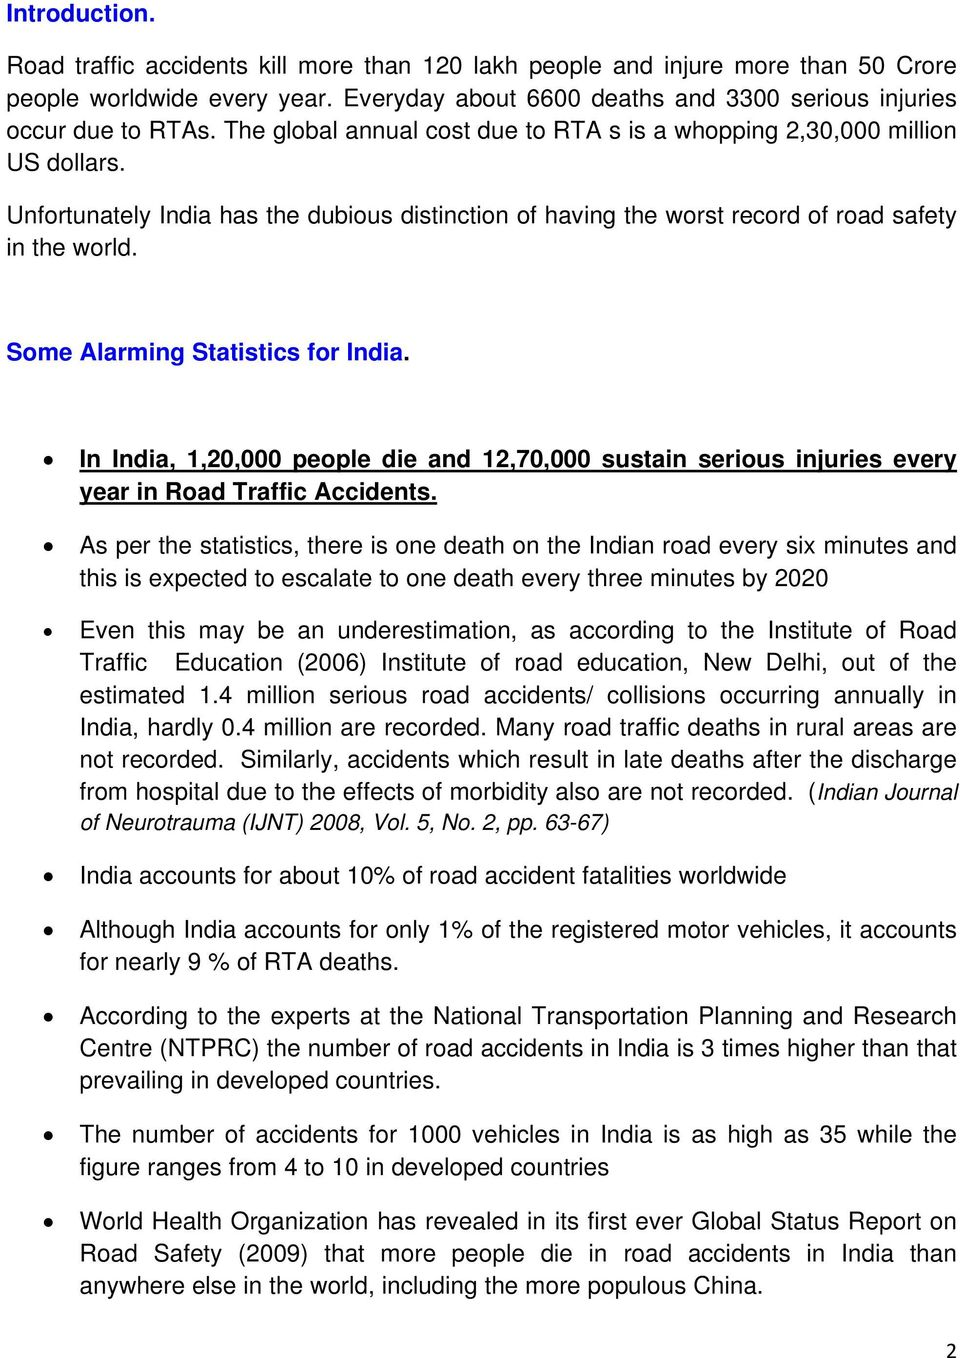 Some Alarming Statistics for India. In India, 1,20,000 people die and 12,70,000 sustain serious injuries every year in Road Traffic Accidents.